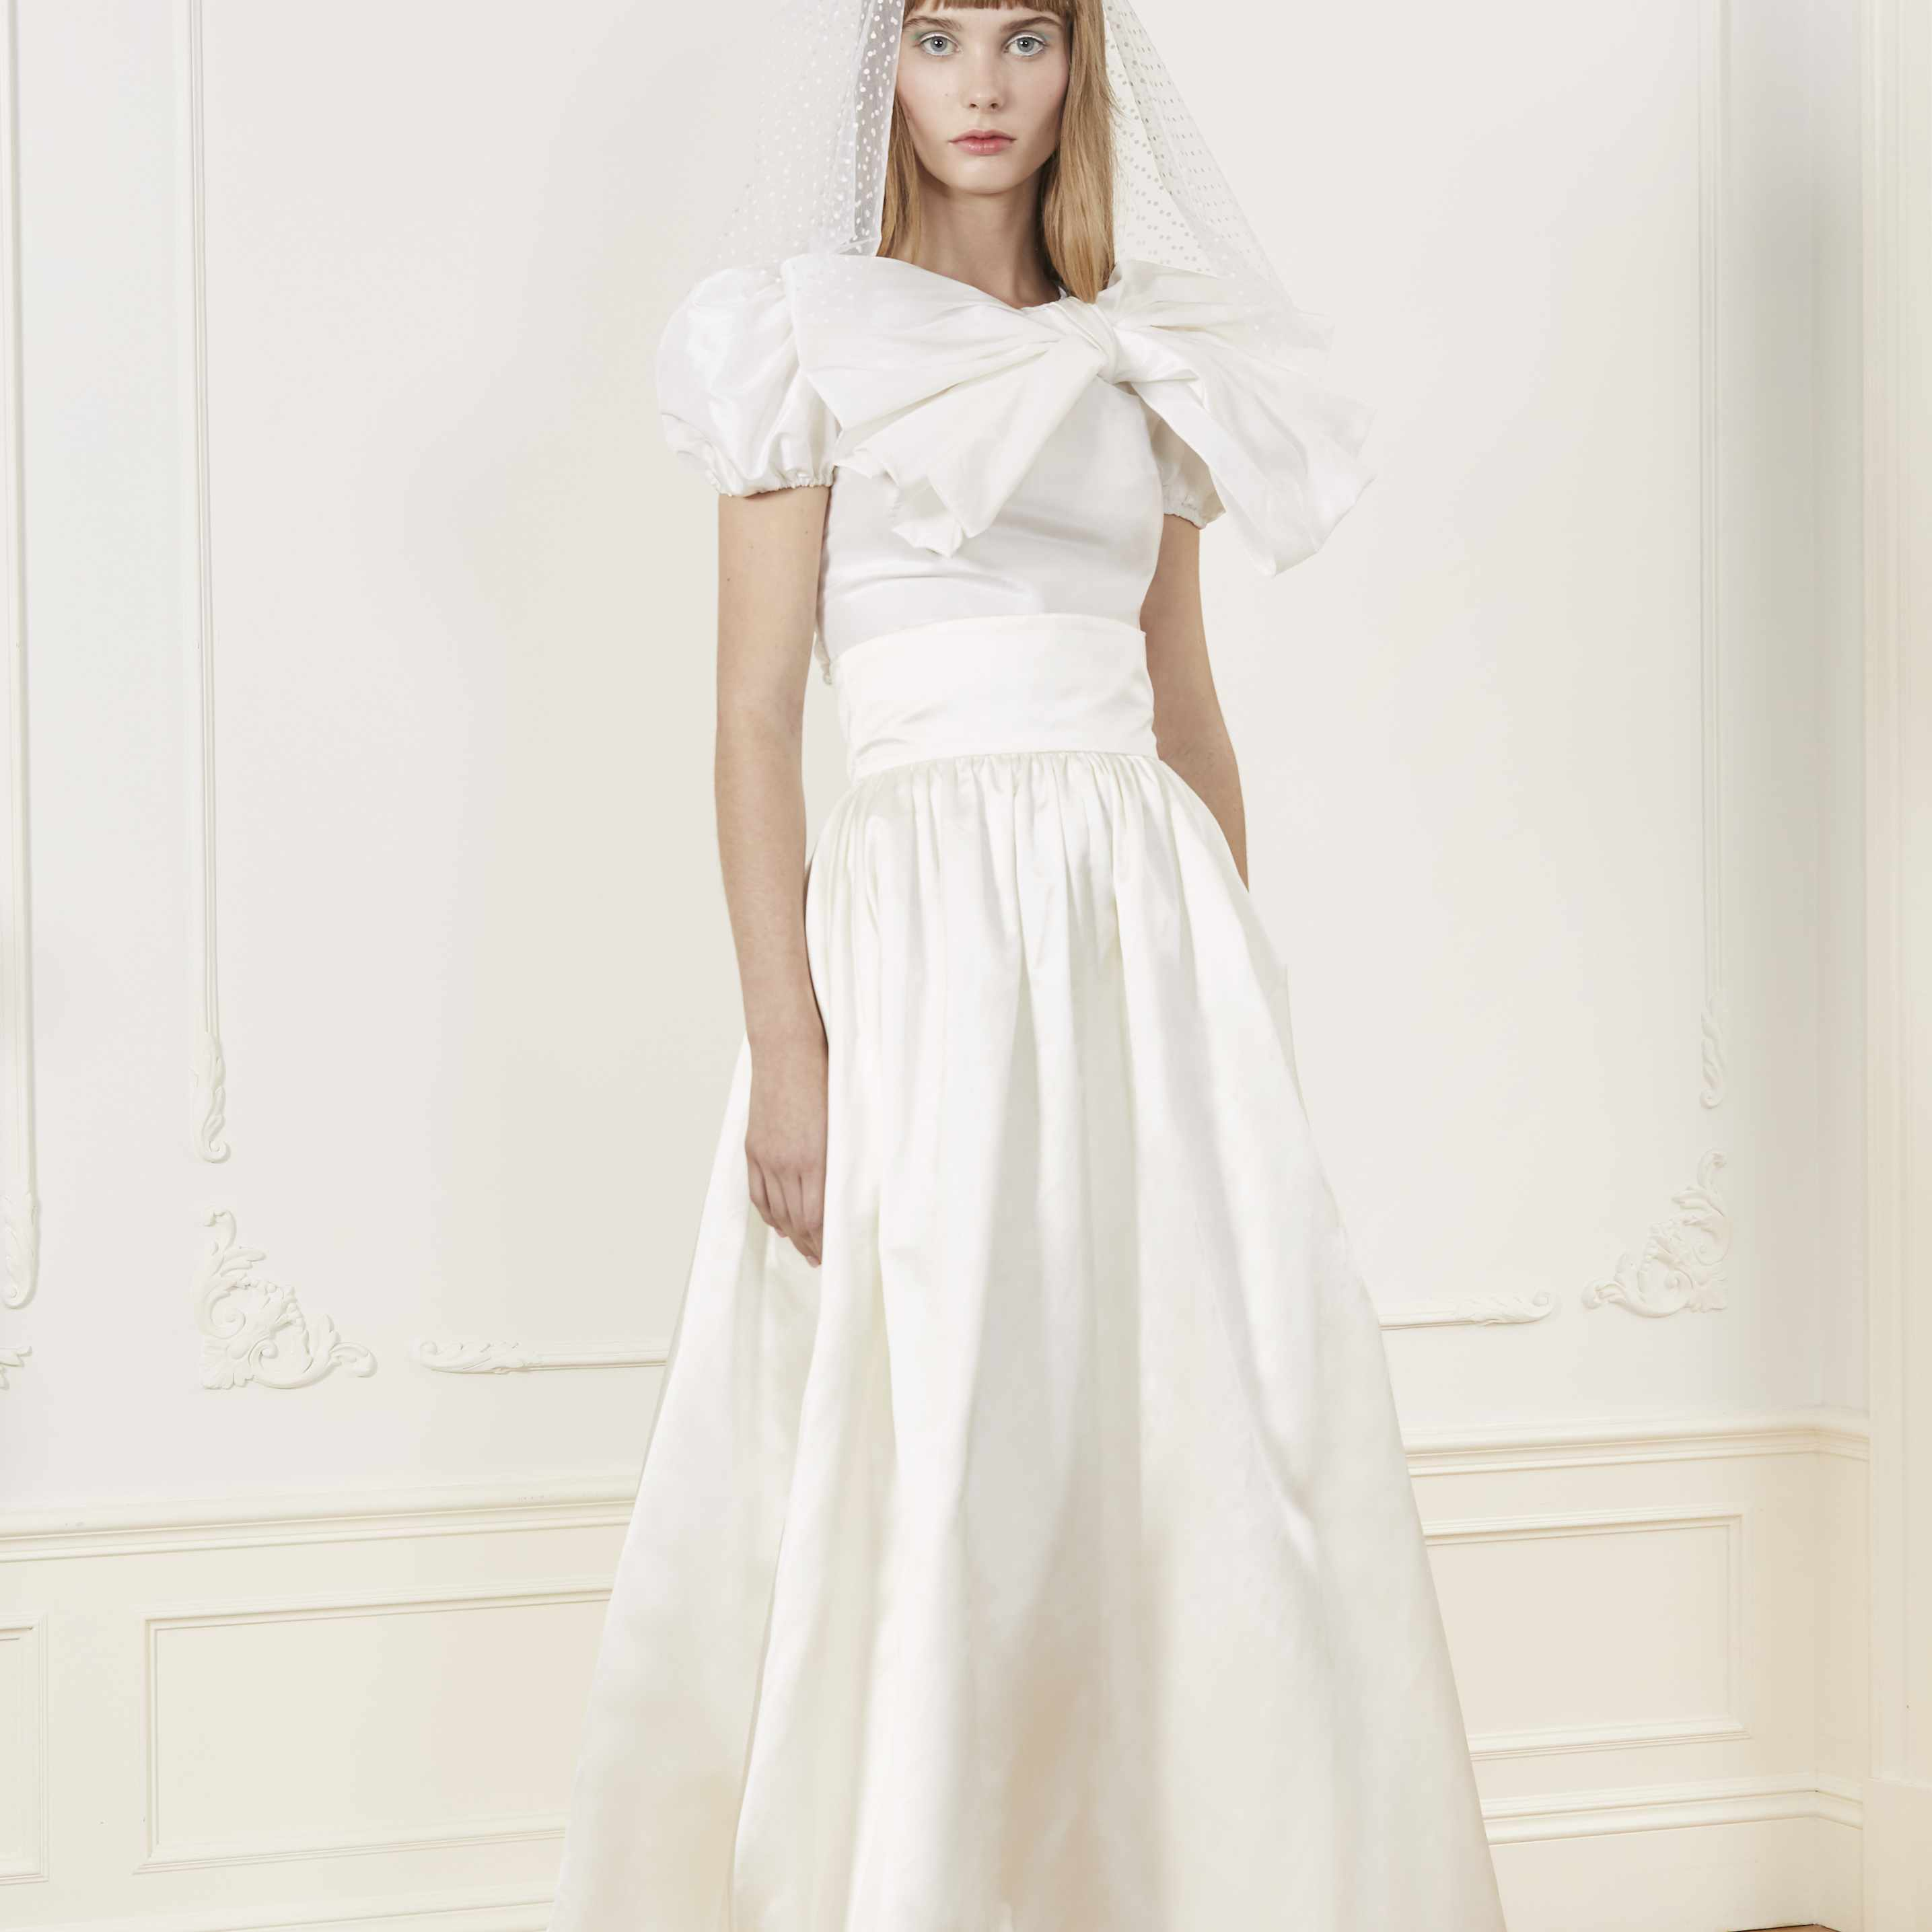 Model in two-piece wedding top and skirt